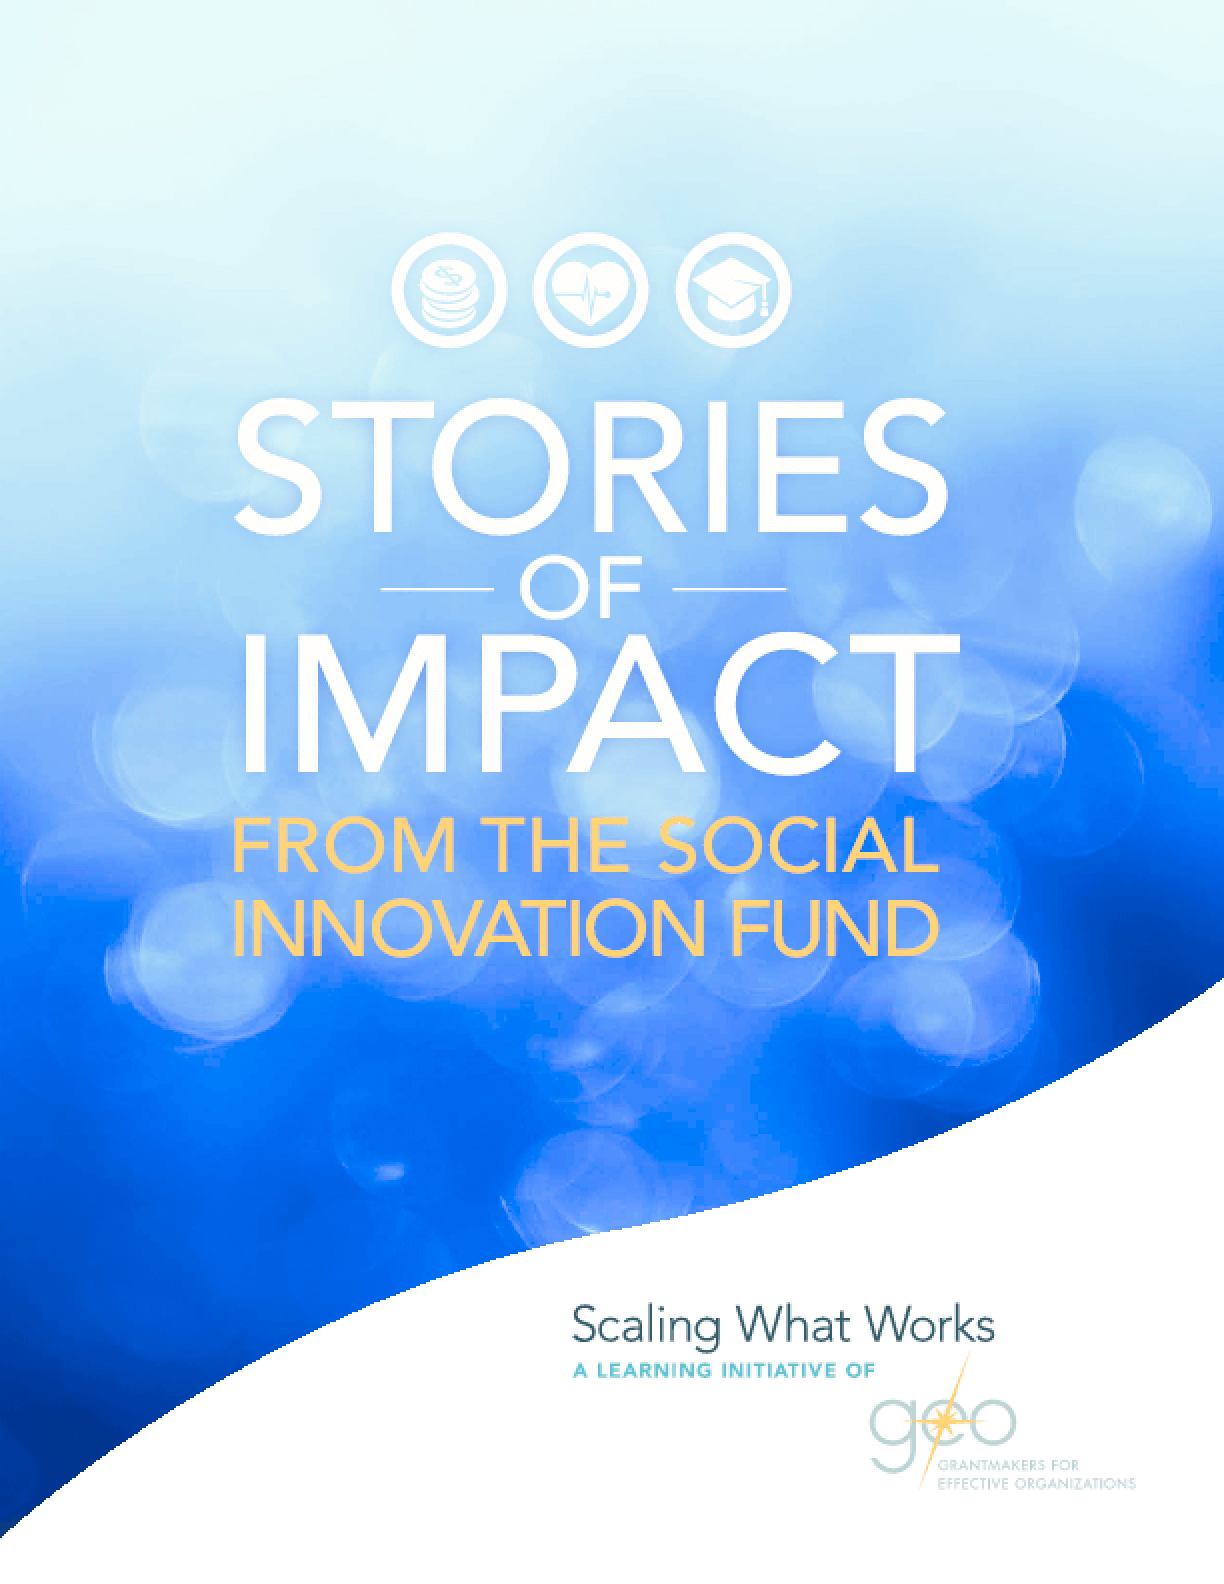 Stories of Impact from the Social Innovation Fund